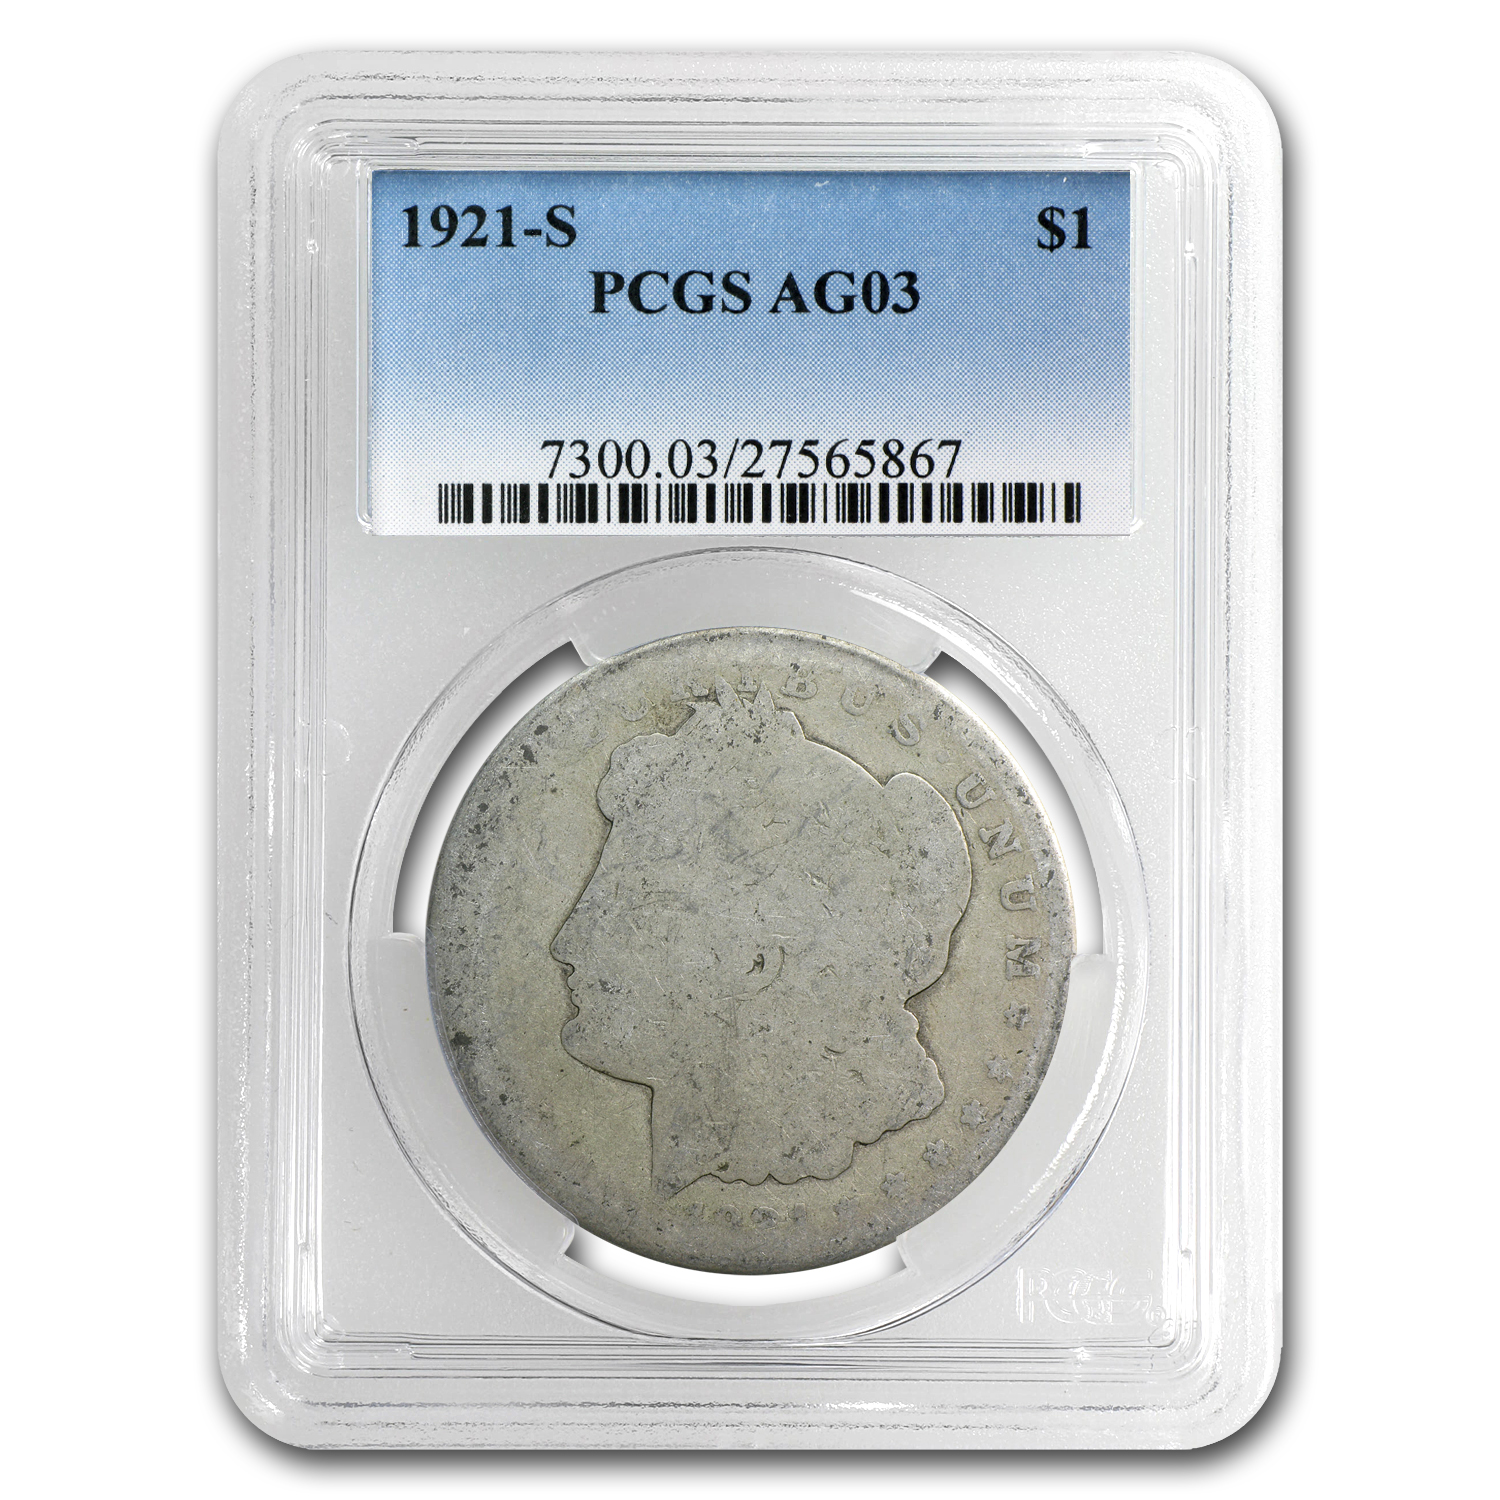 1921-S Morgan Dollar - AG-3 PCGS (Low Ball Registry Coin)